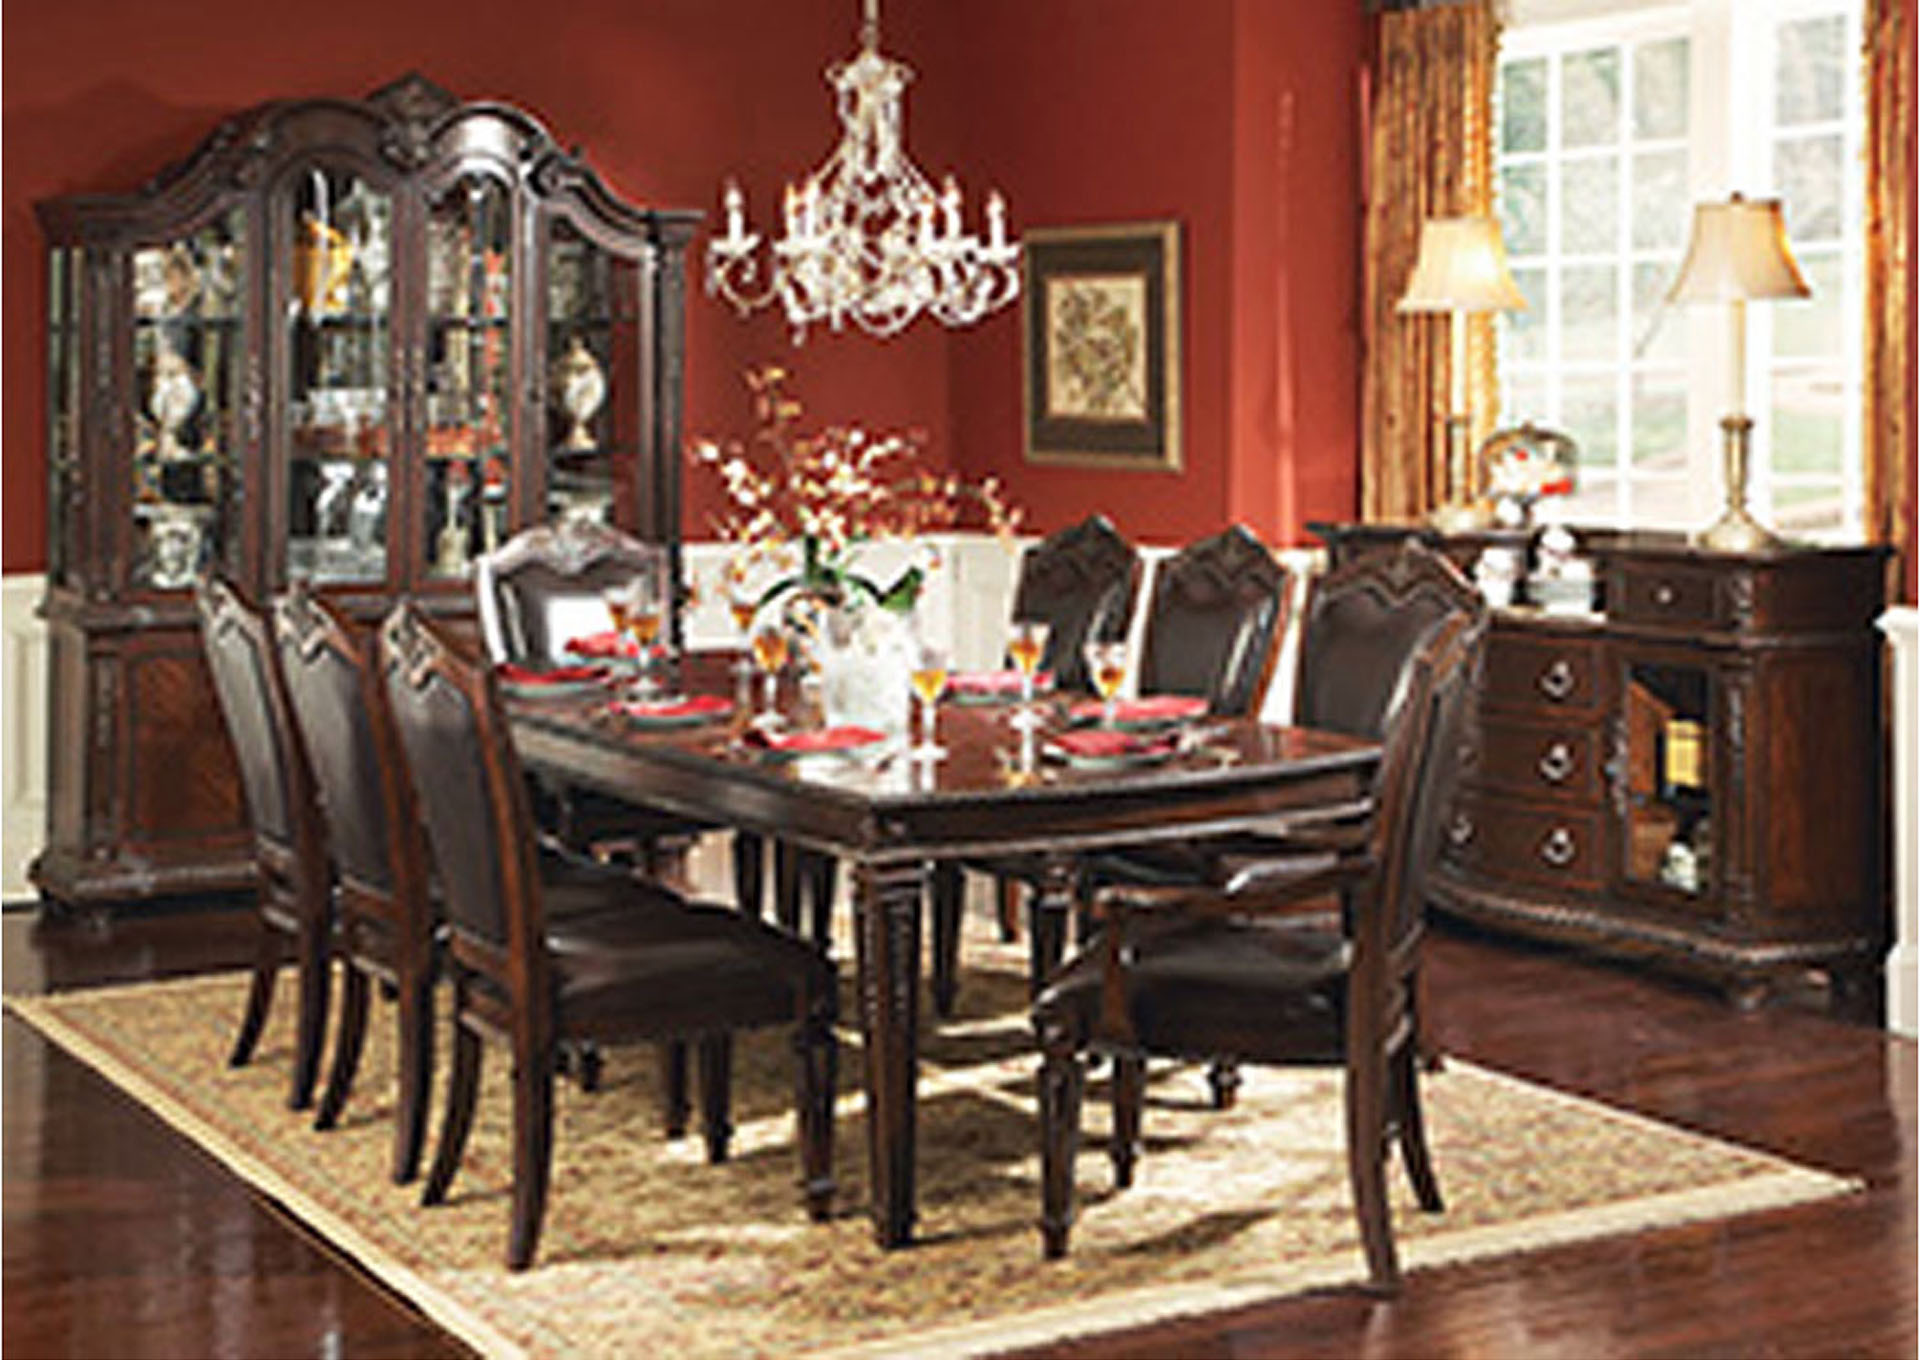 Palace Rich Brown Rectangular Dining Room Table w/2 Arm Chairs and 4 Side Chairs,Homelegance